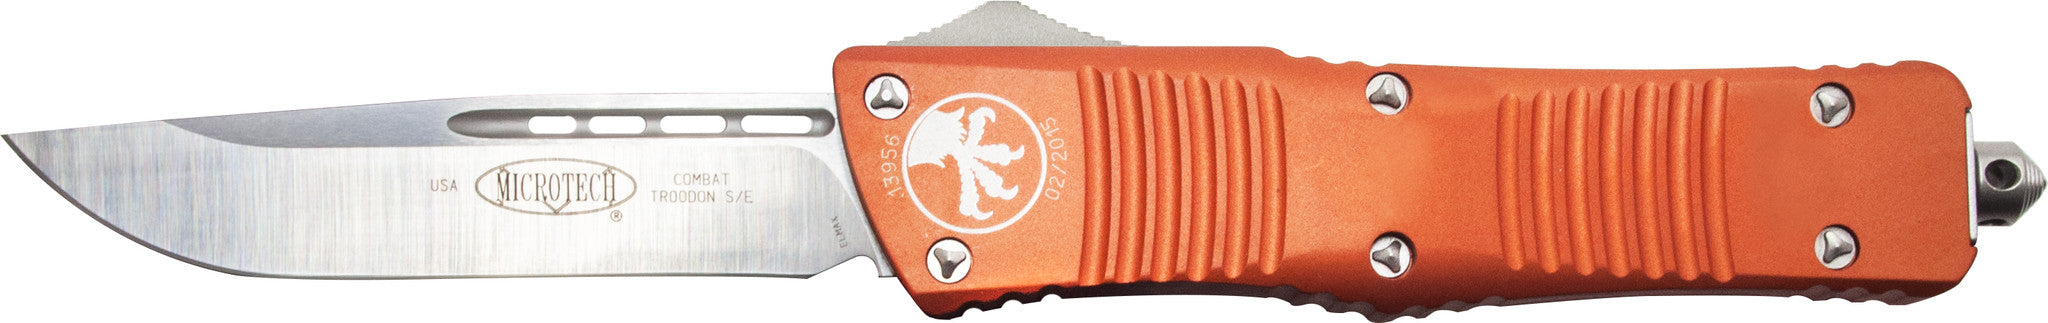 "Microtech Combat Troodon S/E OTF  (3.8"" Orange) 143-4OR - GearBarrel.com"